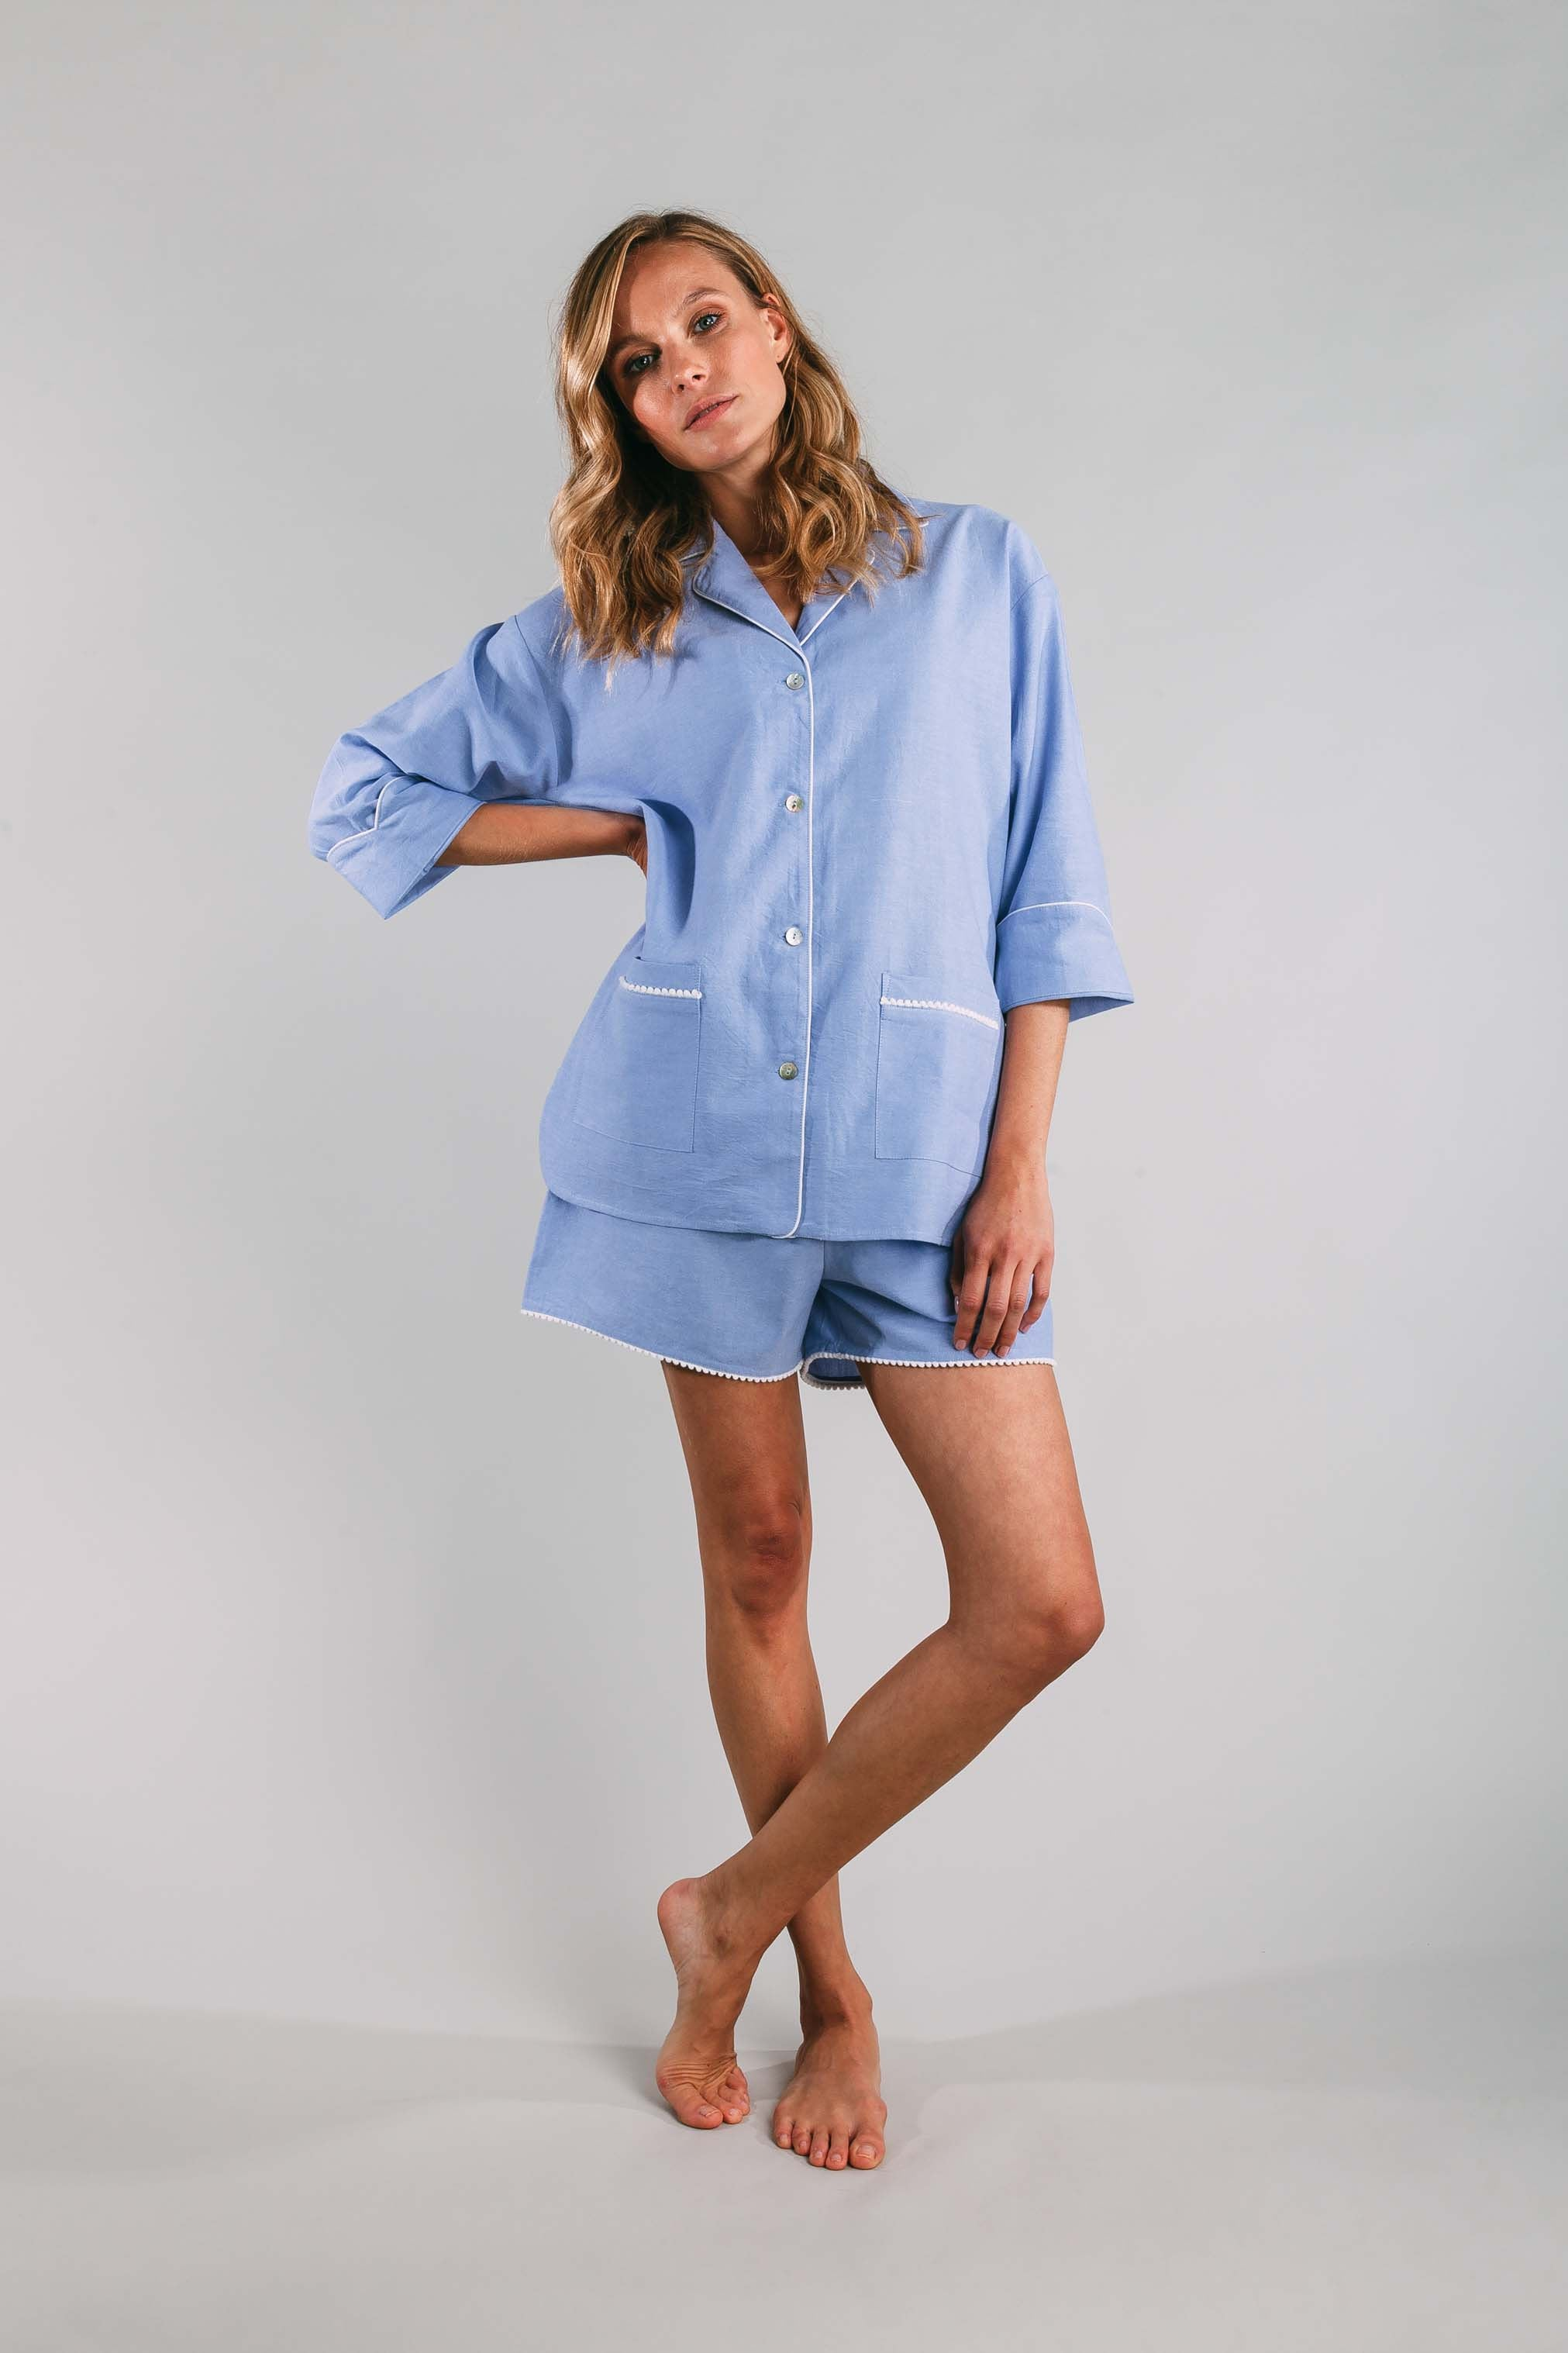 Siân Esther Shorty Set PJs created with blue cotton chambray and pompom trims. These Pjs make a perfect gift for a honeymoon, night before the wedding, special birthdays or Mother's Day. Luxe lounging in these pjs.